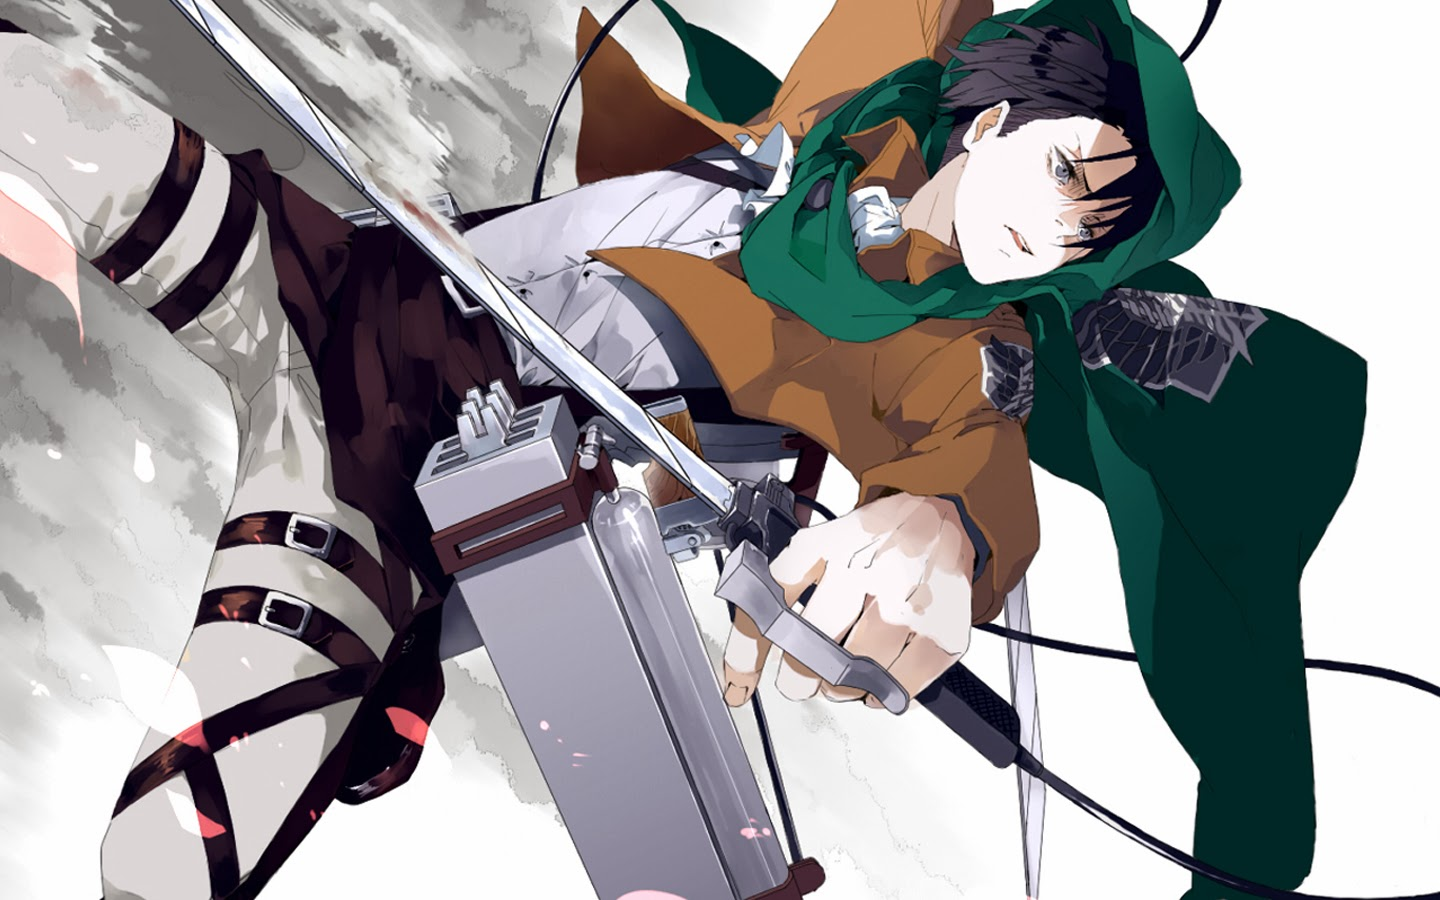 Levi attack on titan shingeki no kyojin anime hd wallpaper 1440x900 6g - Captain Levi Rivaille Attack On Titan Shingeki No Kyojin Anime Hd